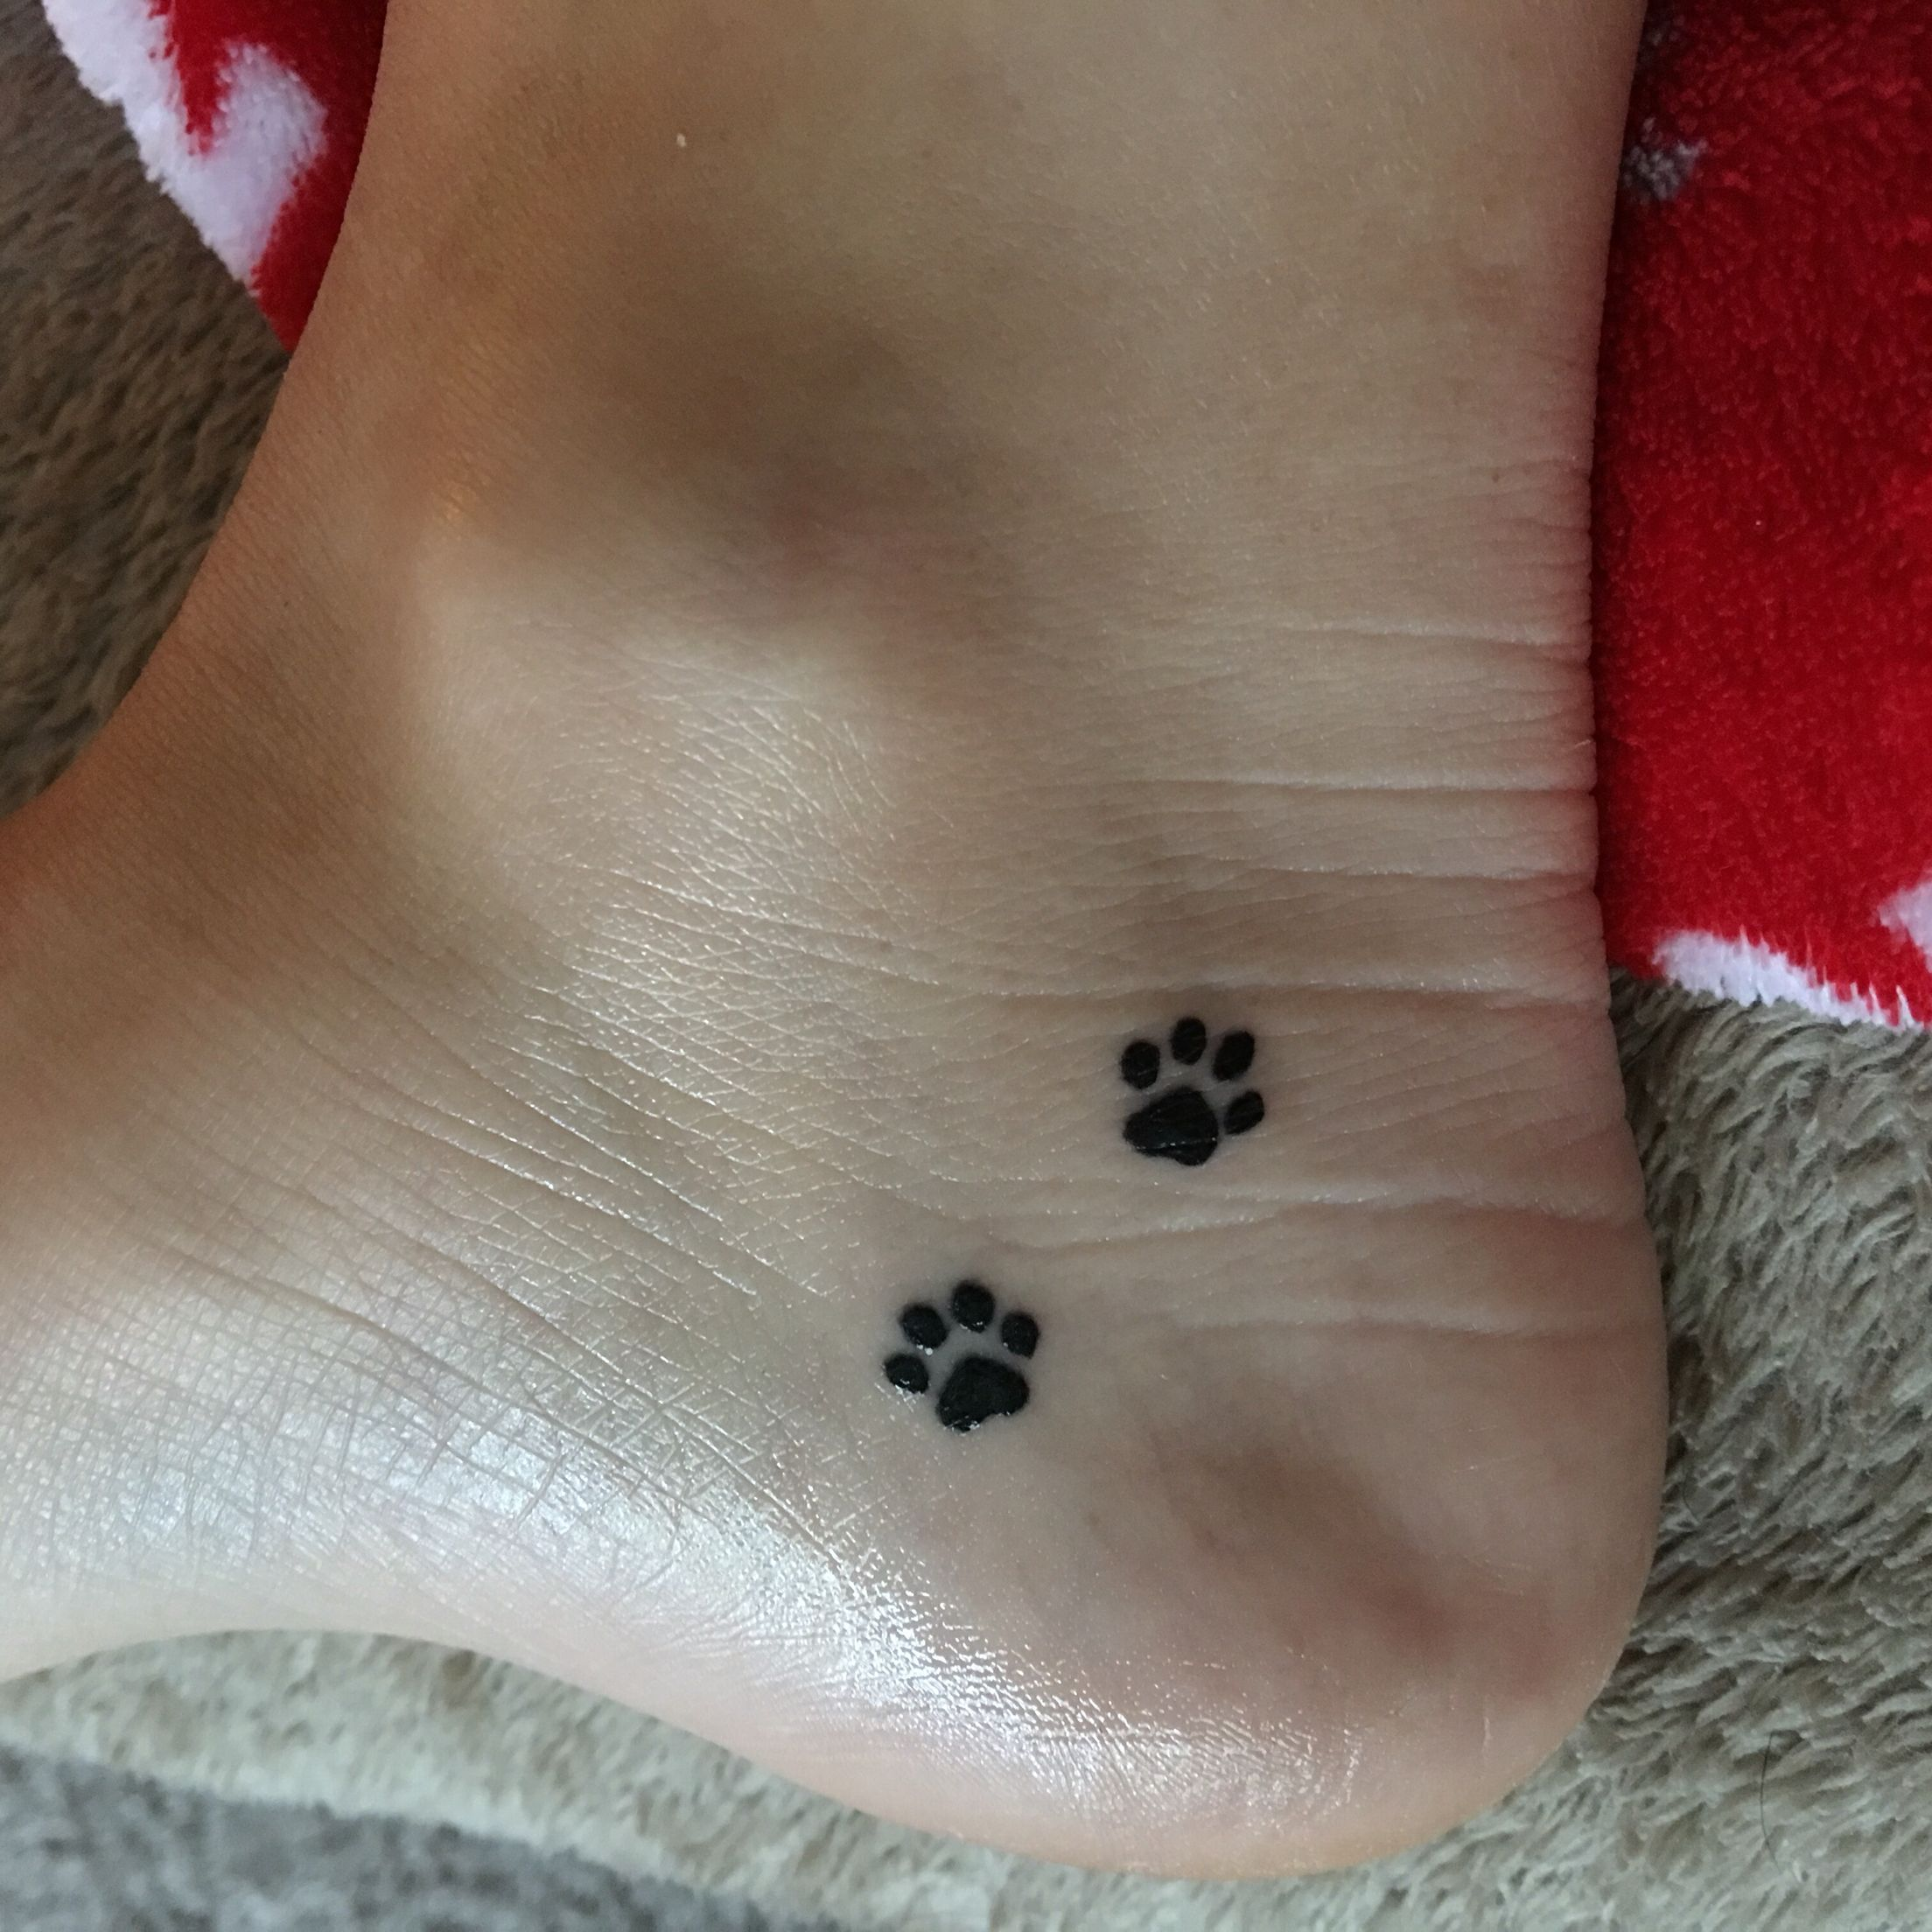 Paw Print Tattoo On Bottom Of Foot: Just Got This Tattoo. Small Paw Prints On The Inside My